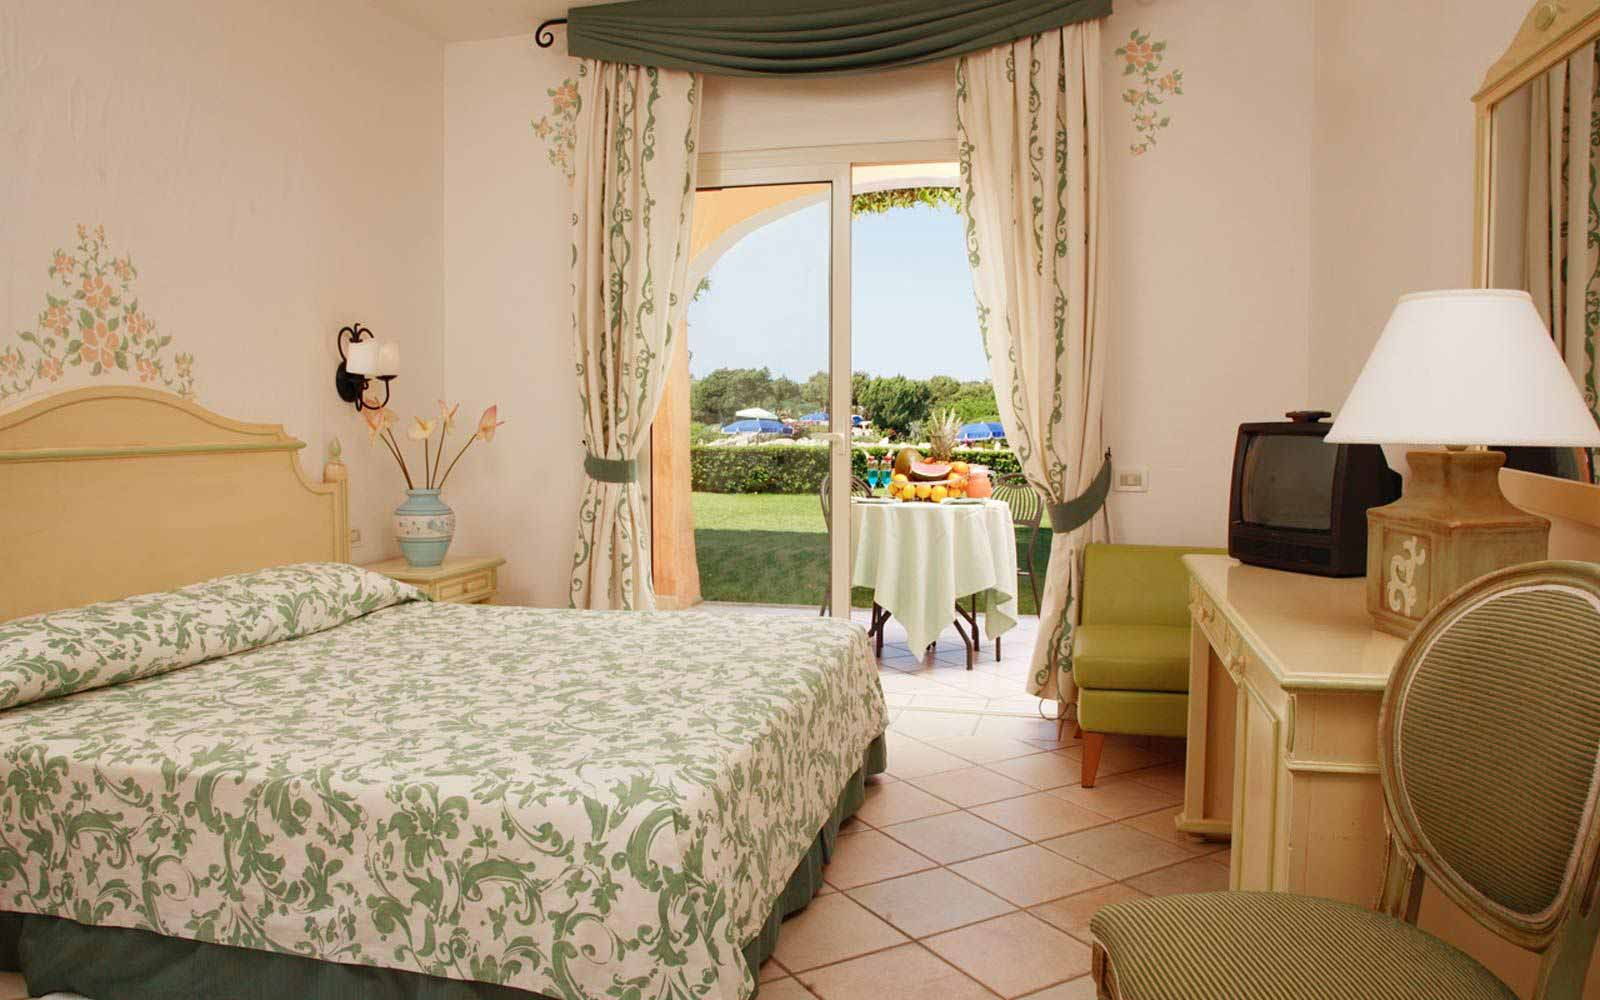 Classic double room at Grand Hotel in Porto Cervo